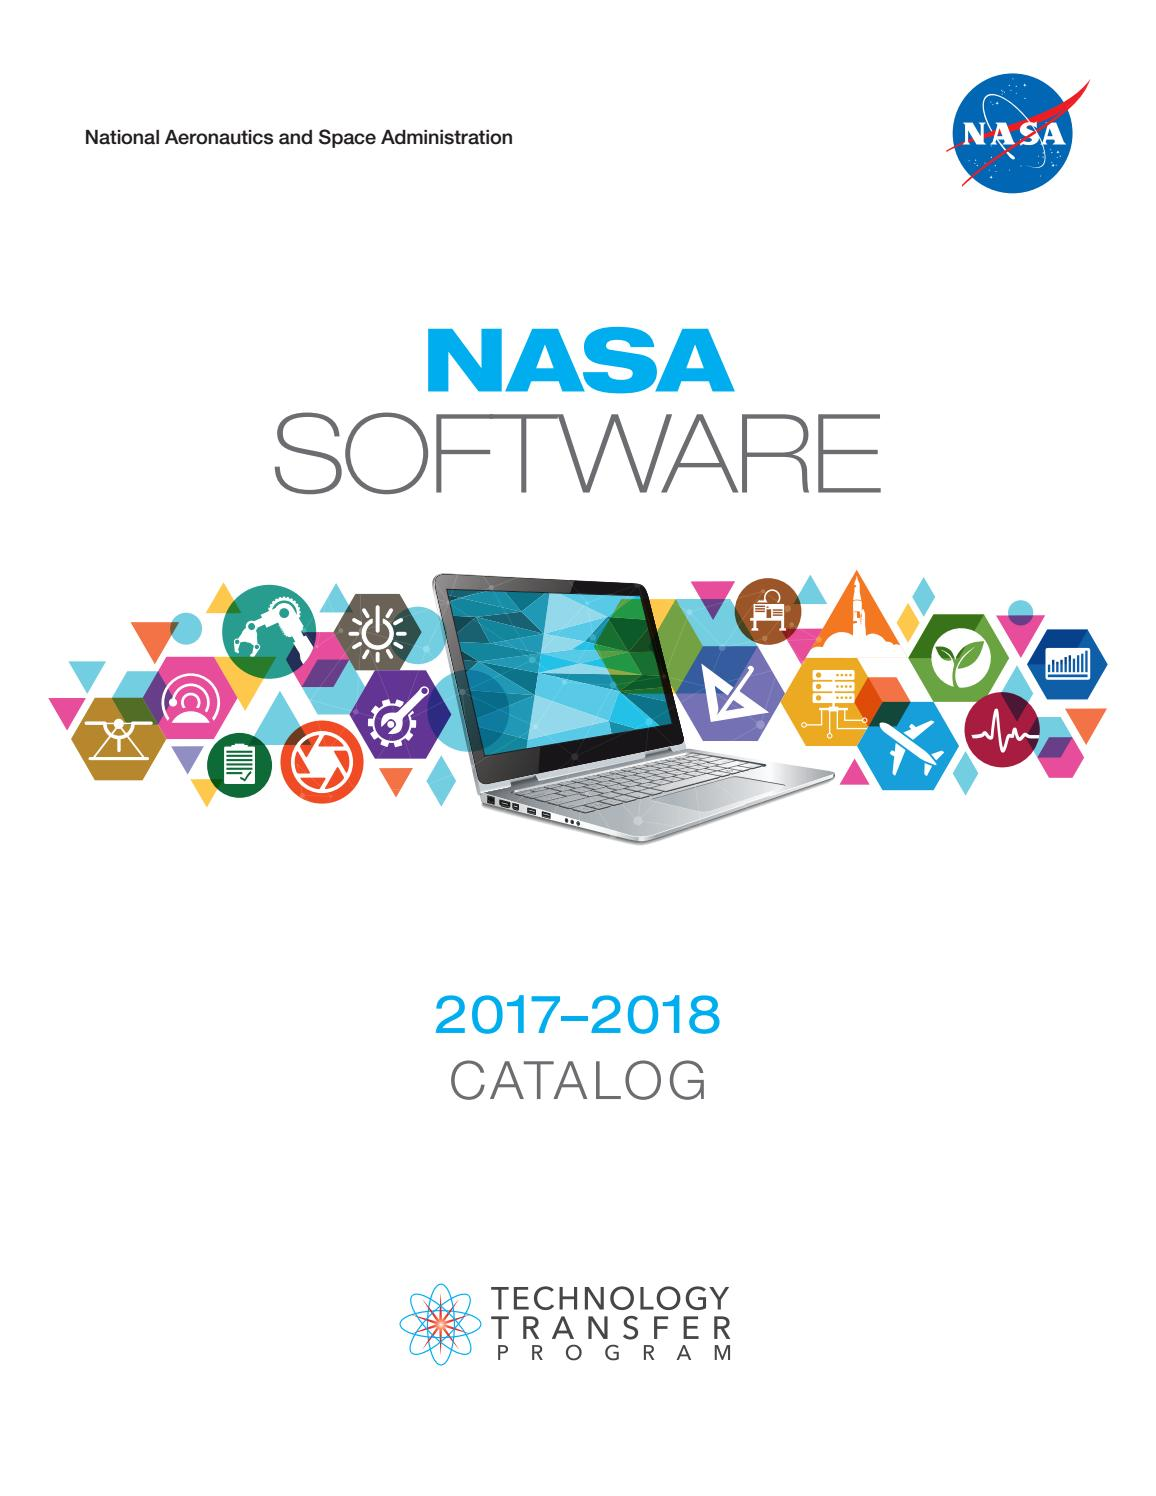 Nasa software catalog 2017 18 by Fernando Sirni - issuu